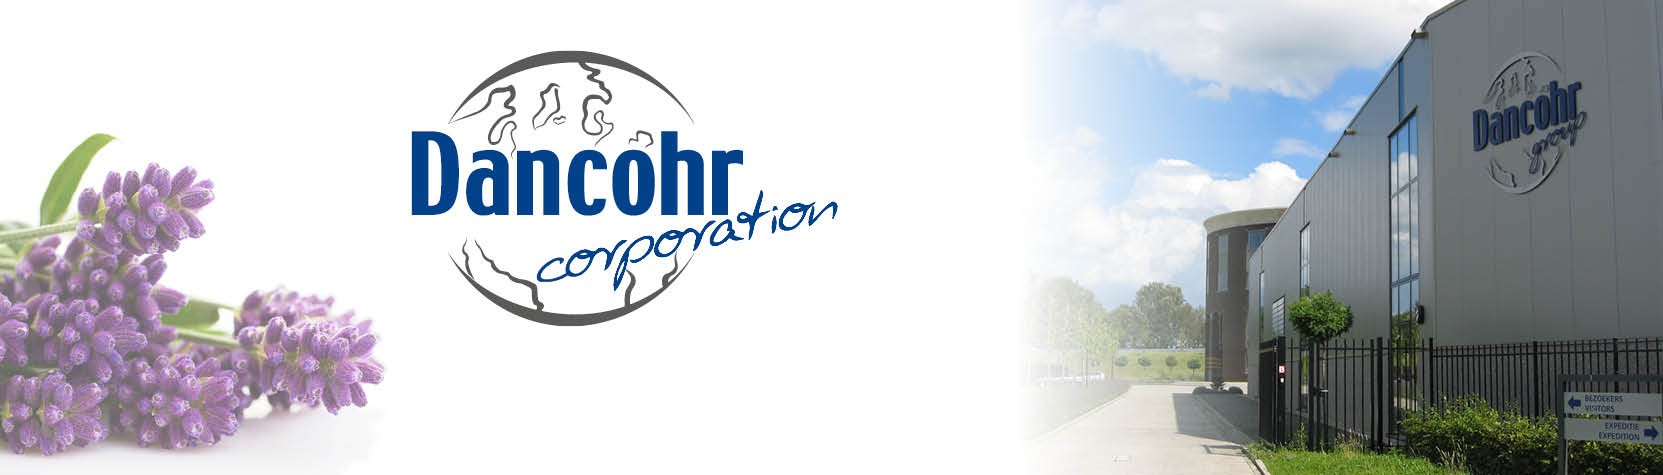 Dancohr Corporation